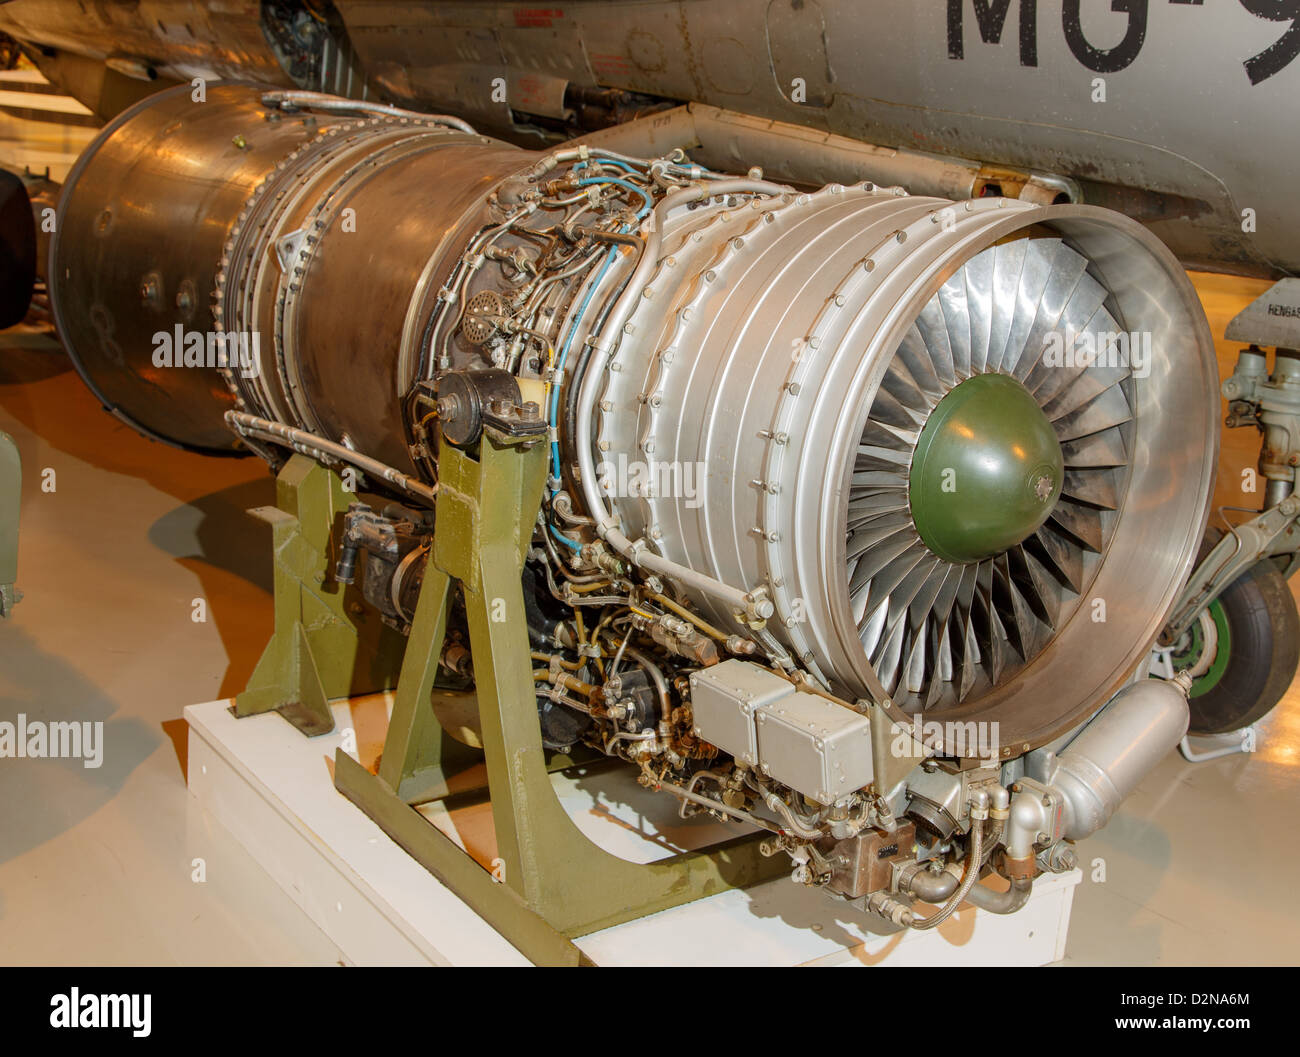 Tumansky R-11 turbojet engine, the power plant of the MiG-21 jet fighter, on display at Central Finland Aviation Stock Photo